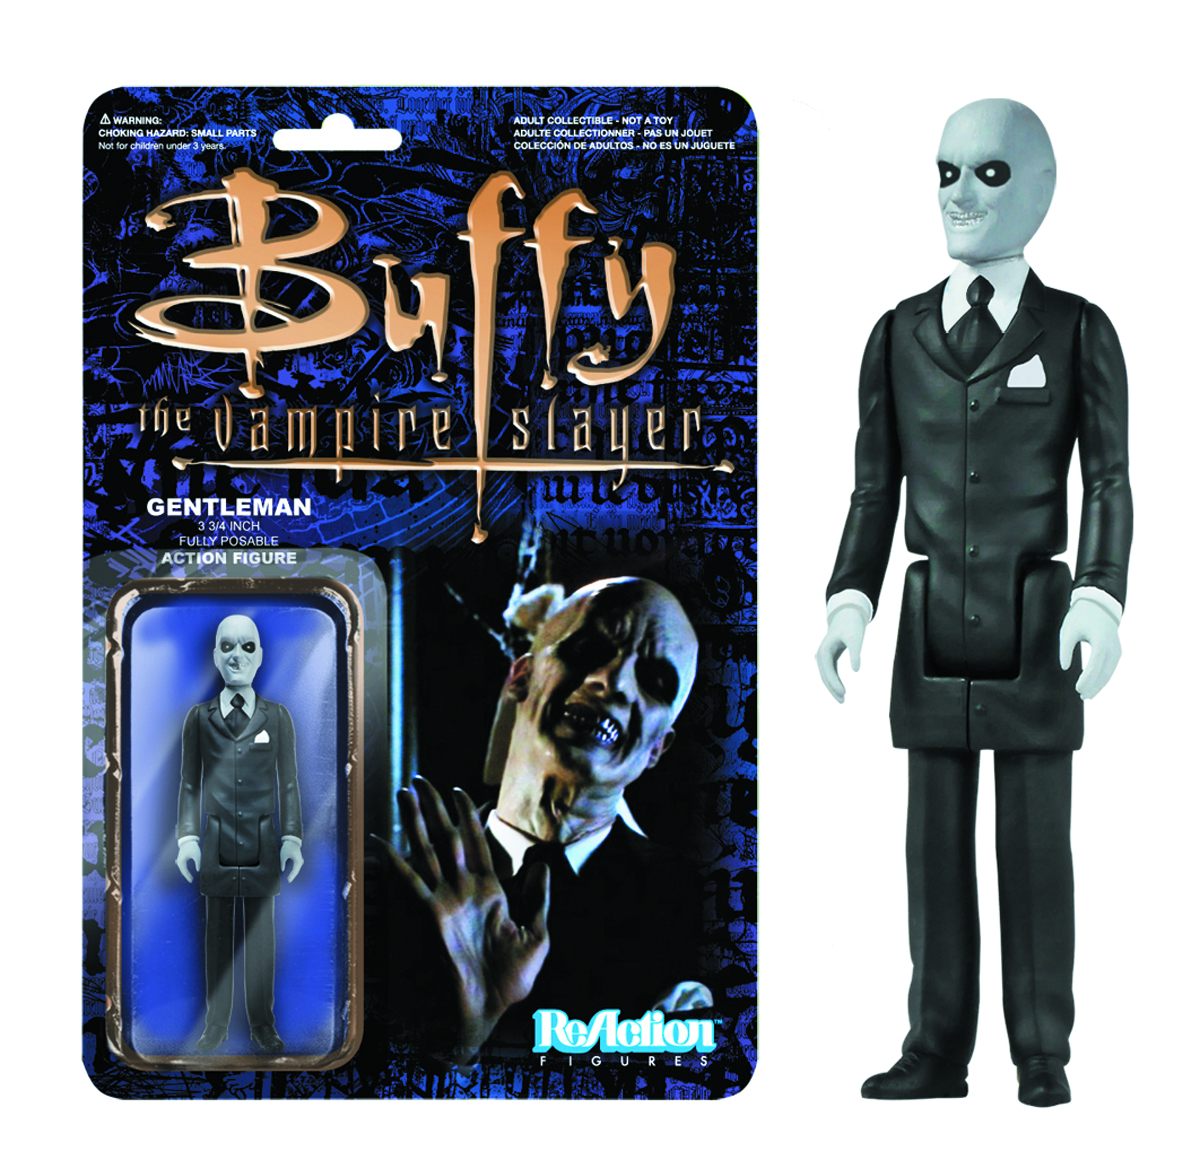 REACTION BTVS GENTLEMAN FIG